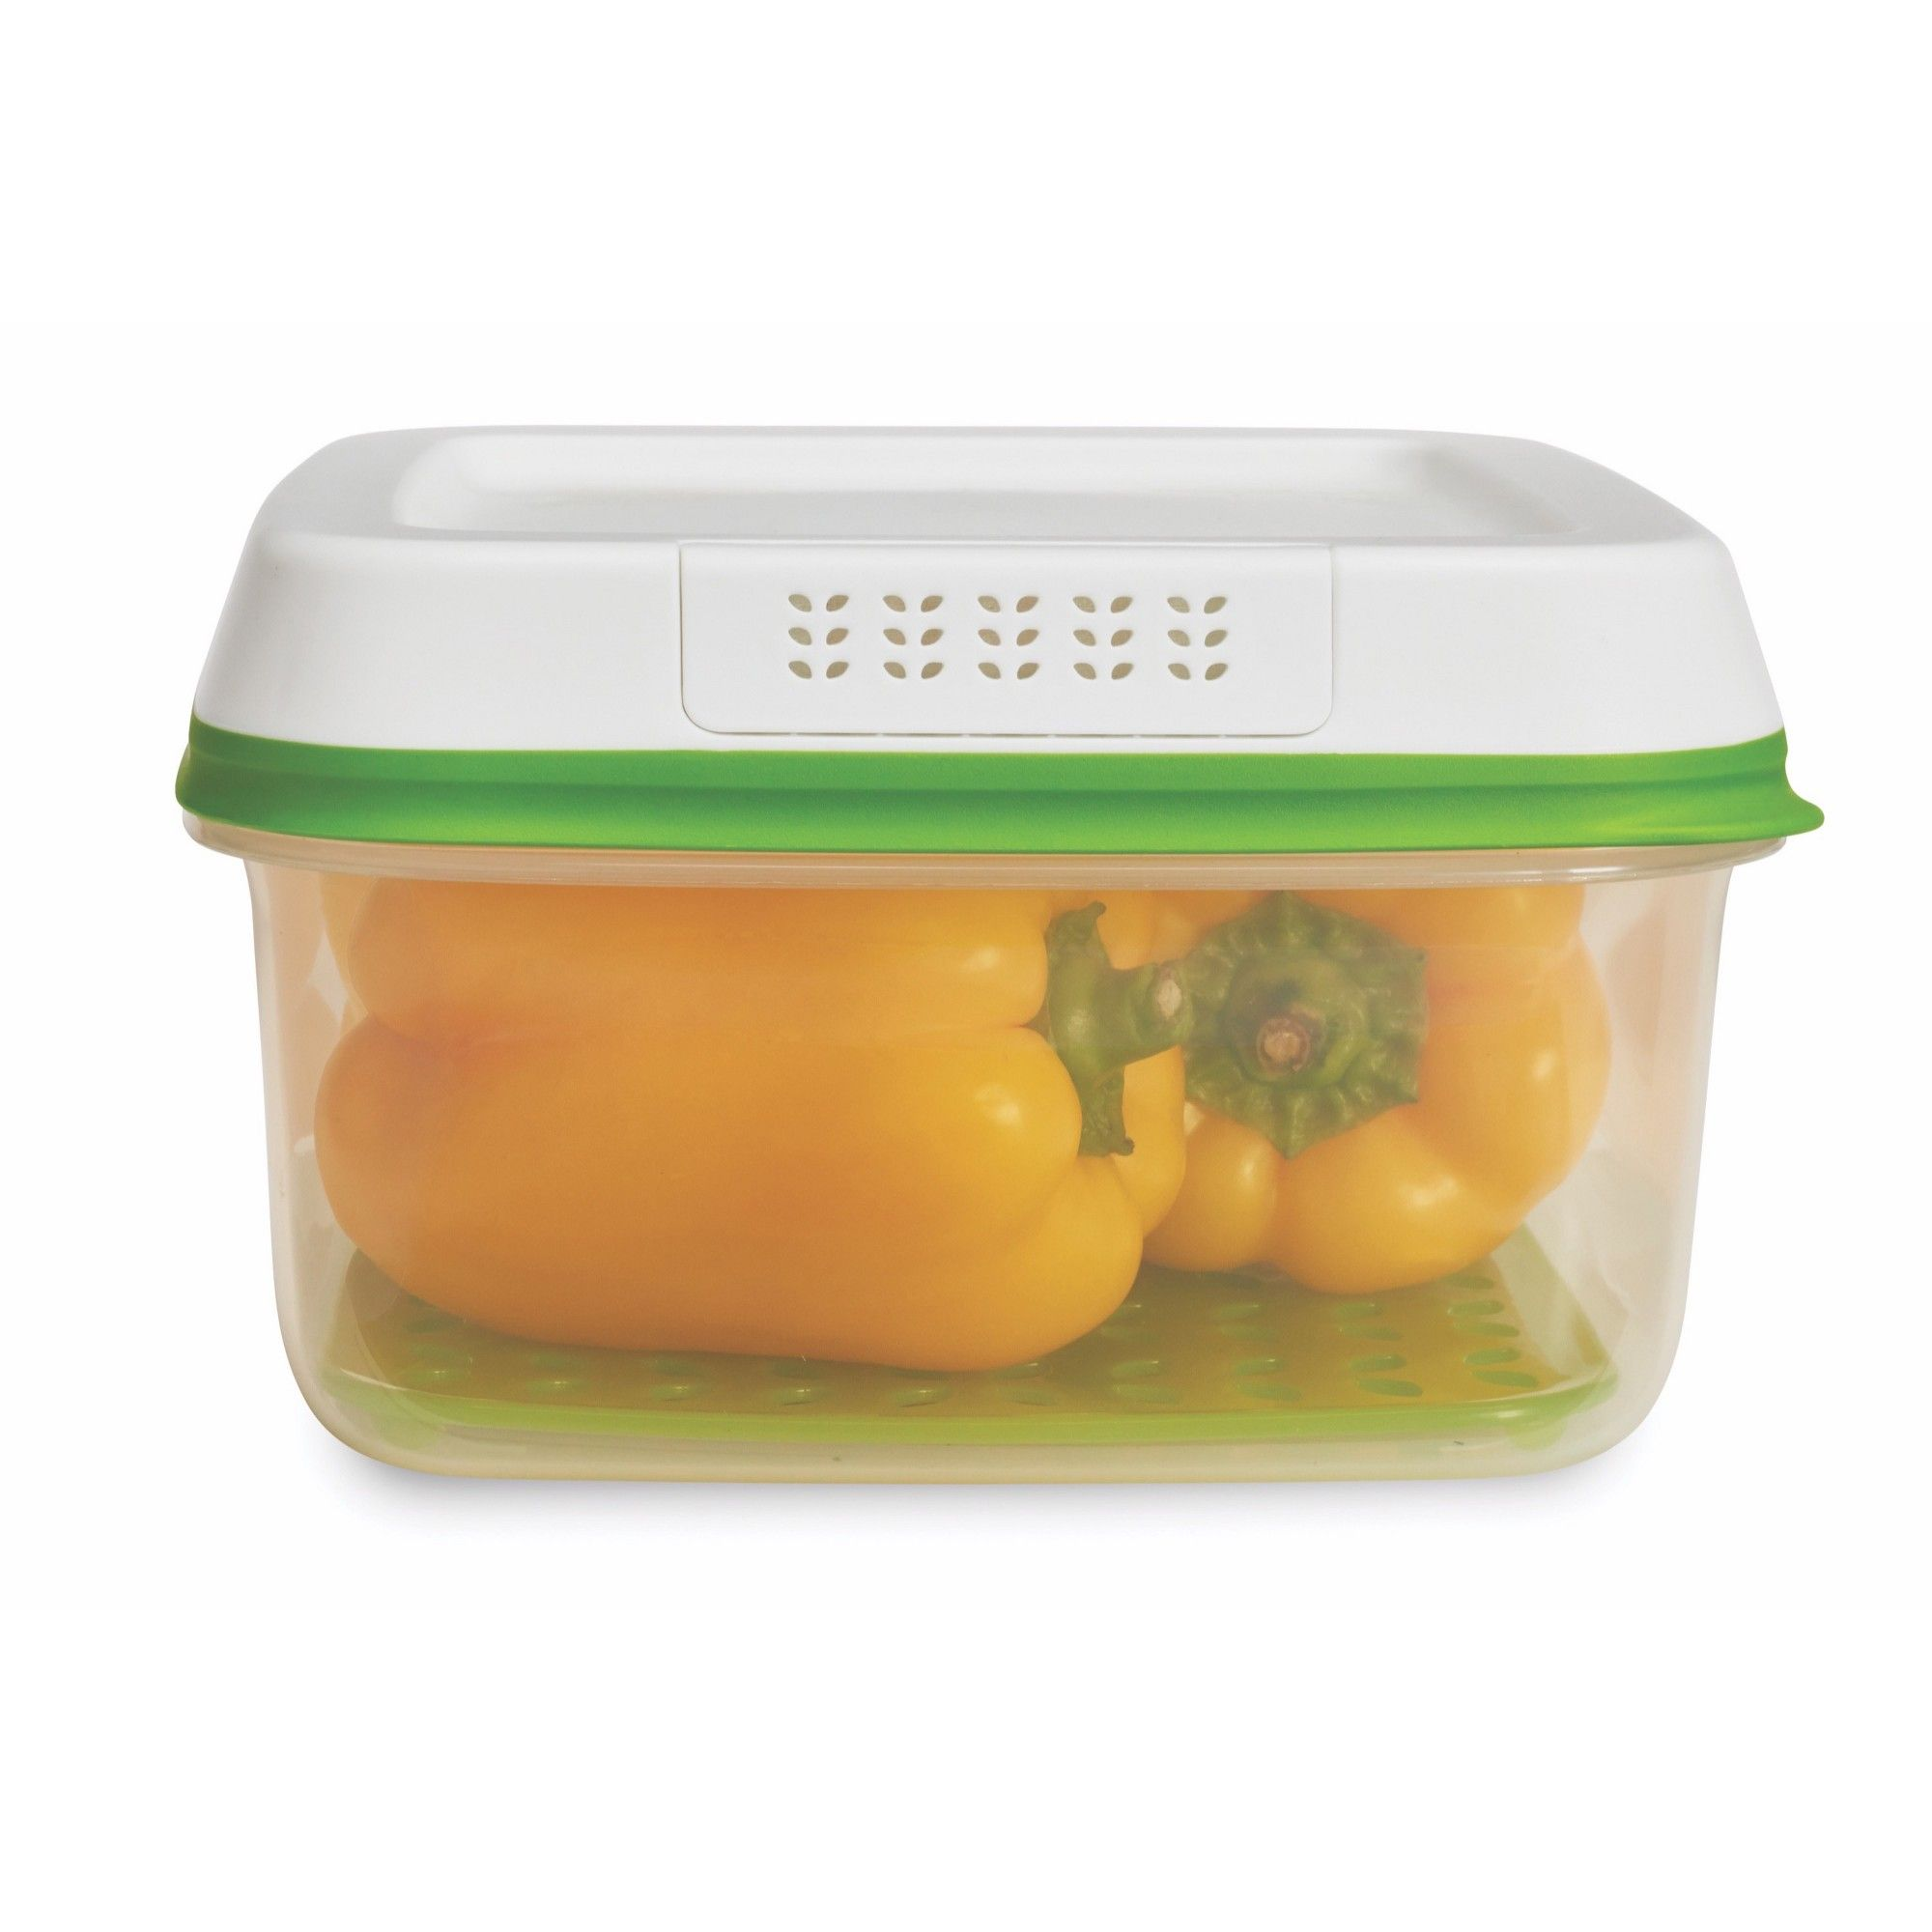 Rubbermaid 11 1 Cup Freshworks Produce Saver Food Storage